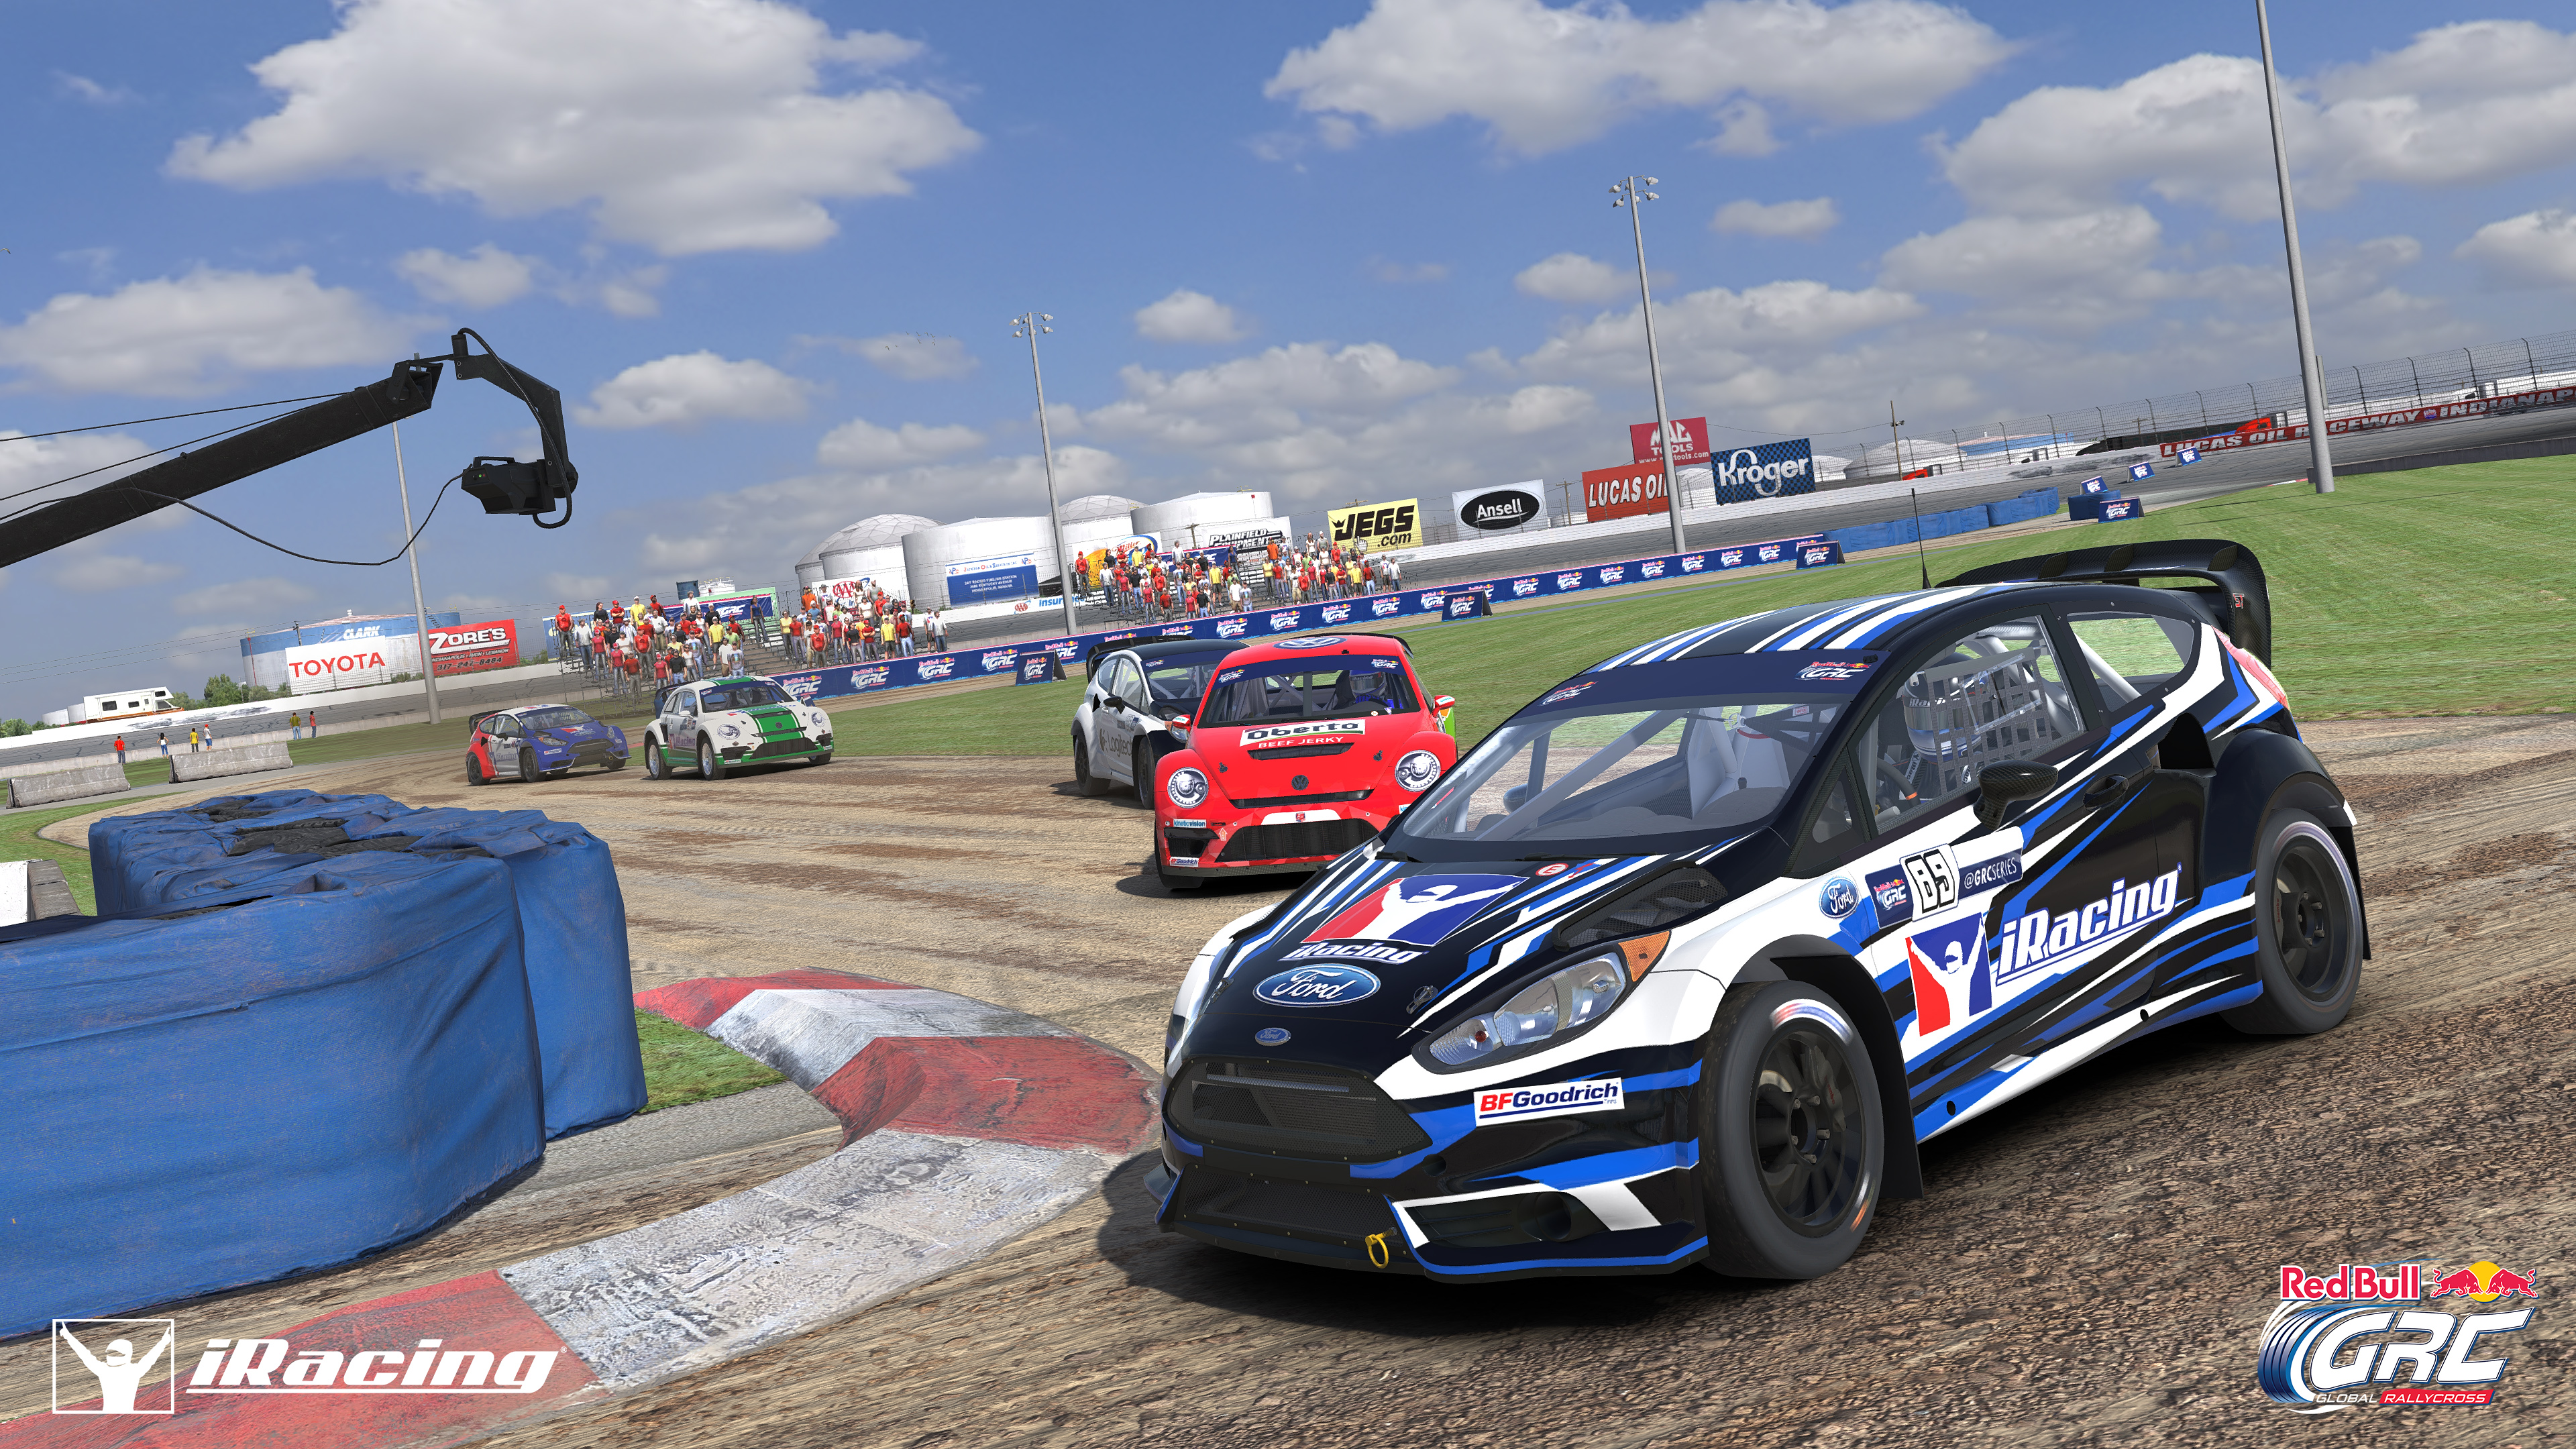 Red Bull Global Rallycross And Iracing Team Up To Bring